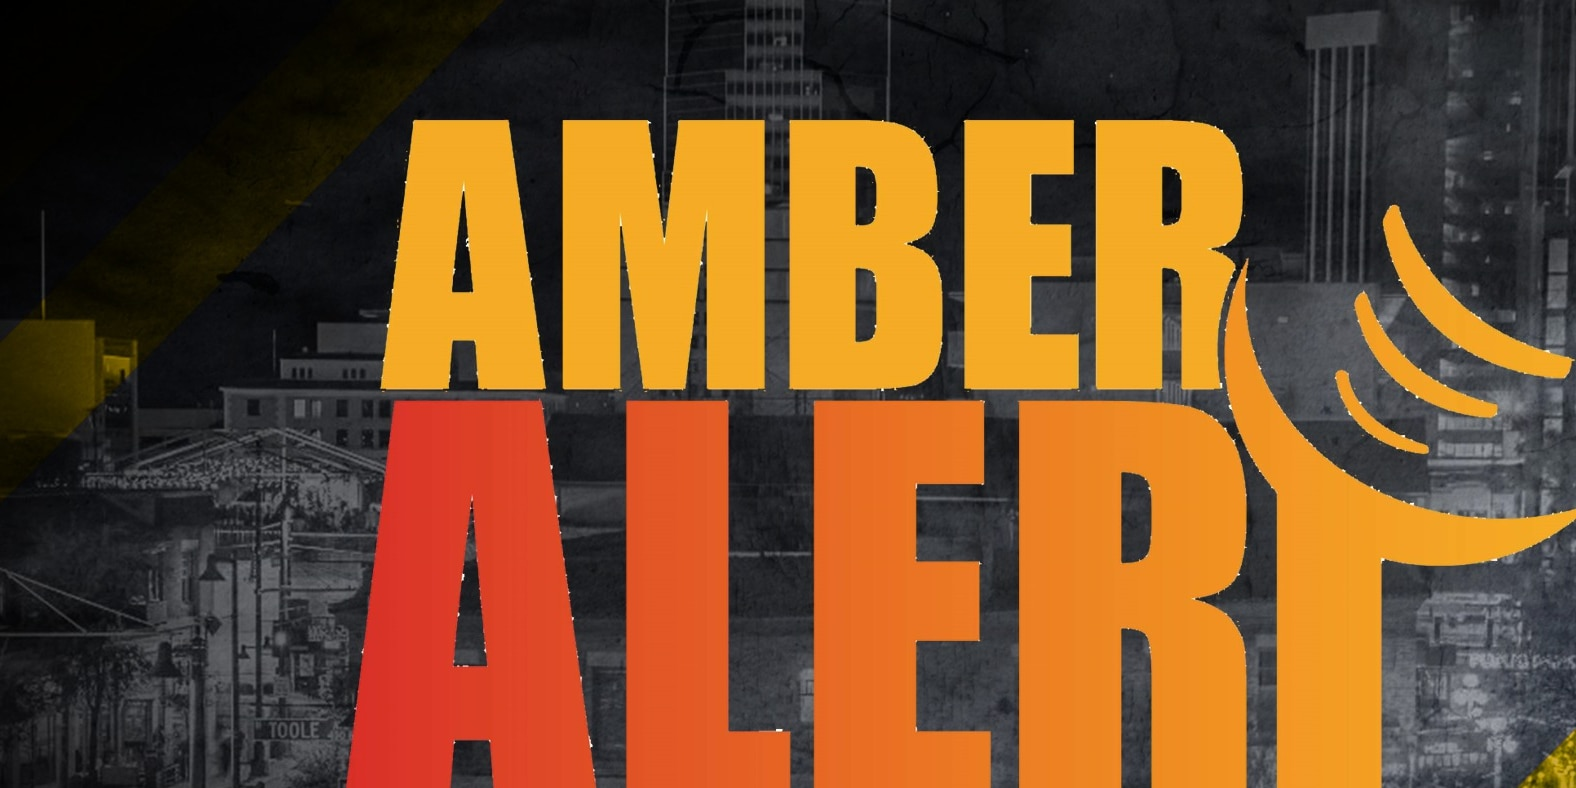 AMBER ALERT: Children abducted in Phoenix